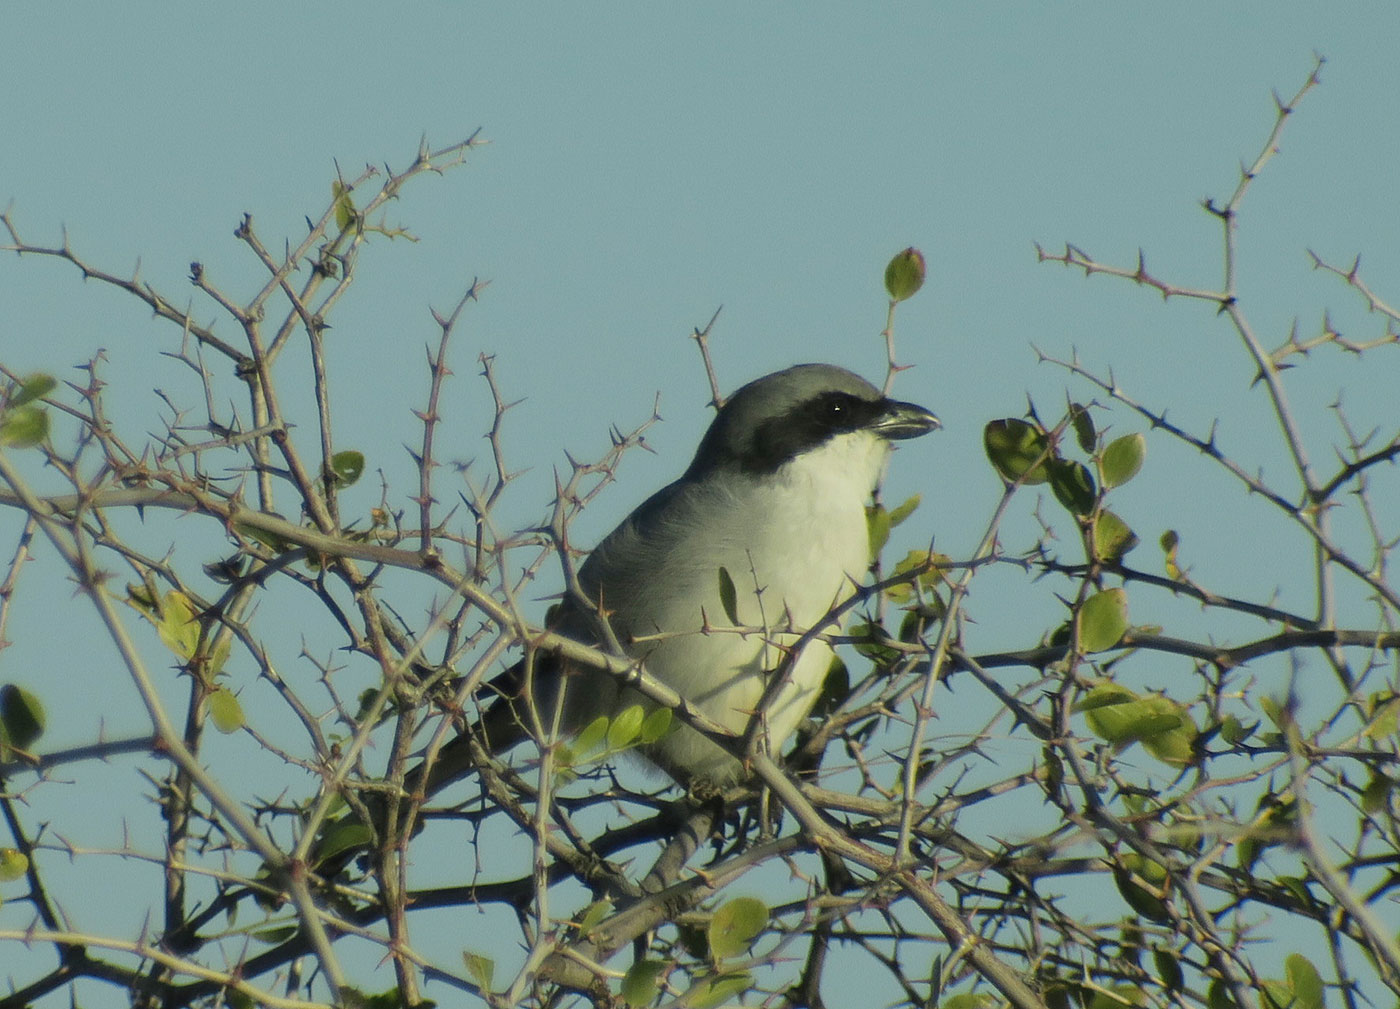 13_raubwuerger_great-grey-shrike_guelmim_marokko_2018-11-26_4569